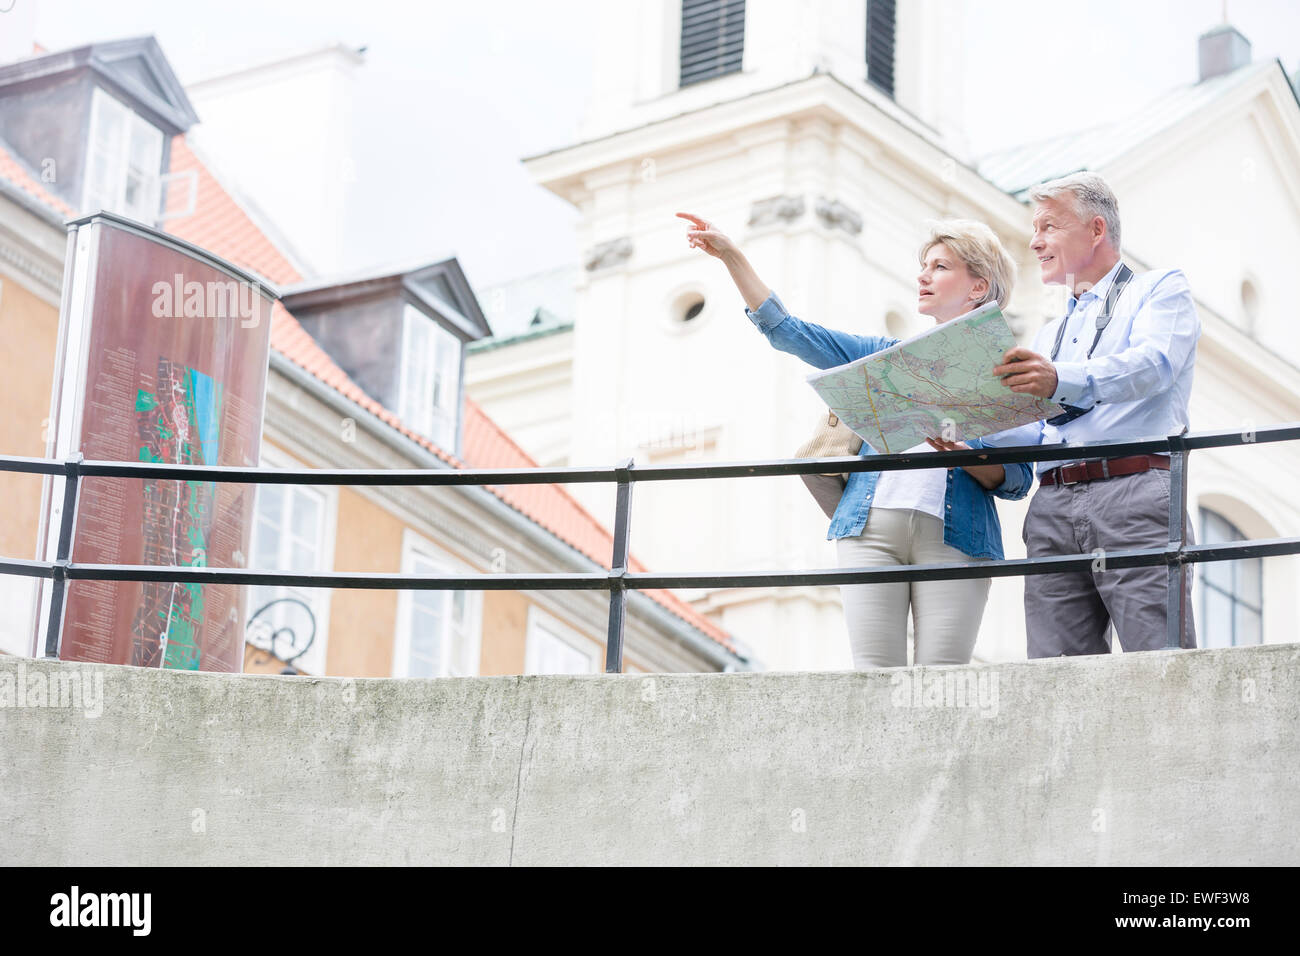 Middle-aged woman showing something to man while reading map by railing - Stock Image